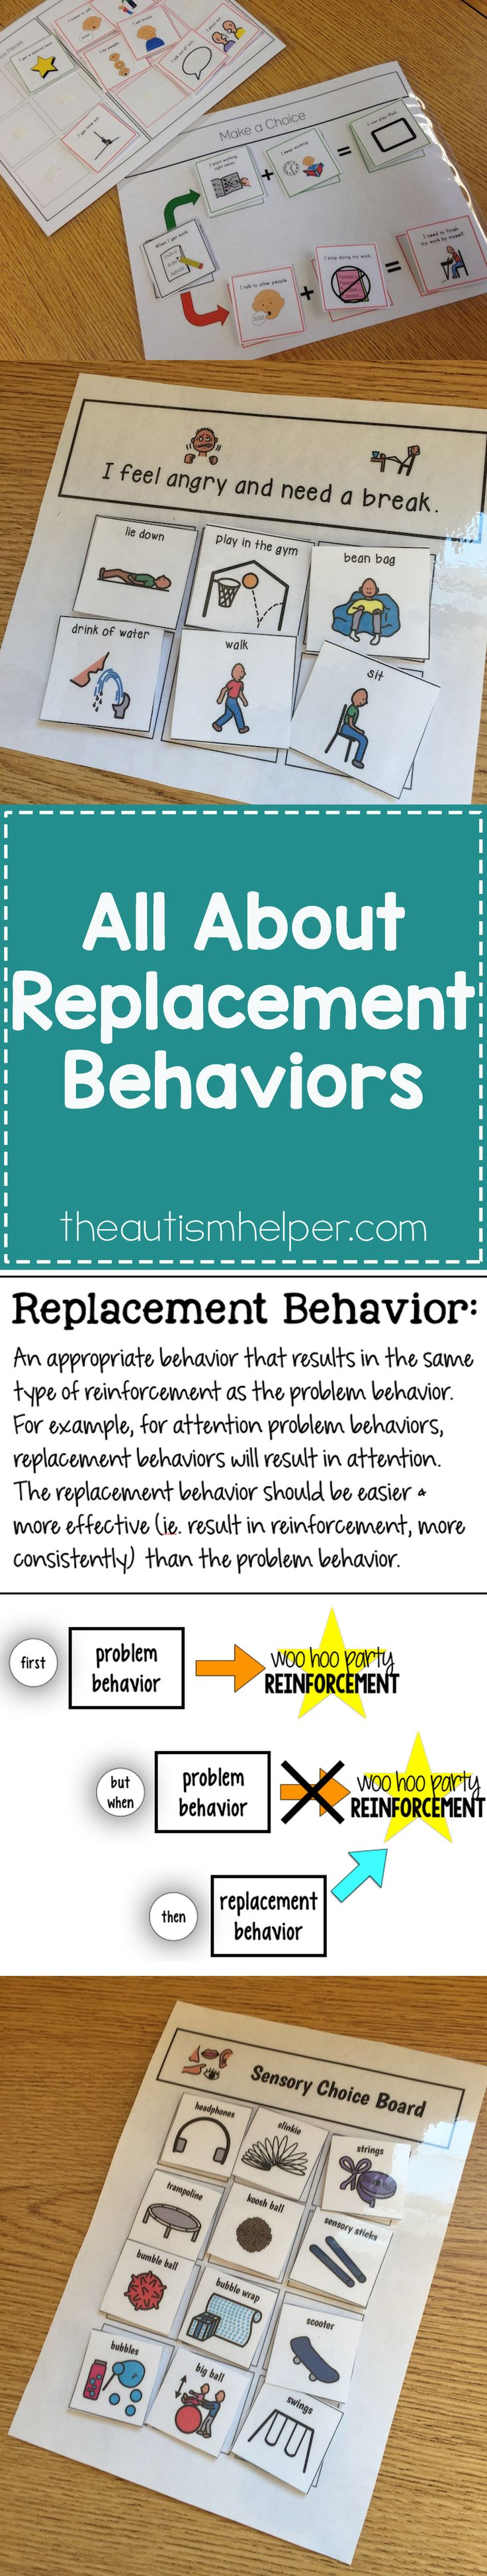 When the problem behavior you're seeing from your students no longer results in a healthy dose of reinforcement – you need a replacement behavior to the rescue! From theautismhelper.com #theautismhelper